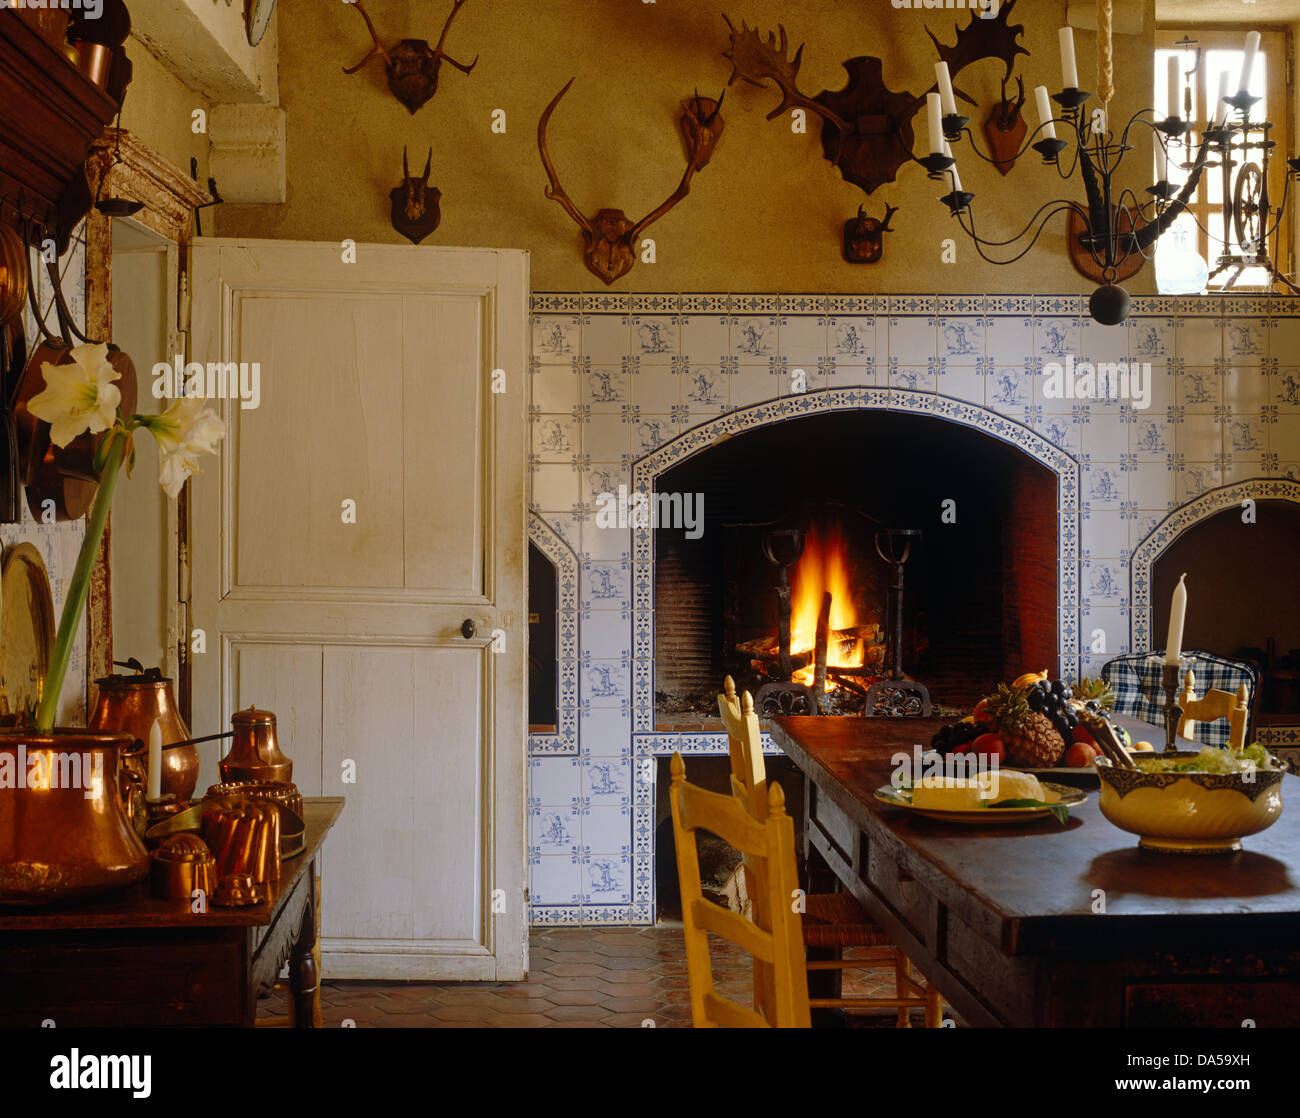 Wooden Table And Chairs In French Country Kitchen With